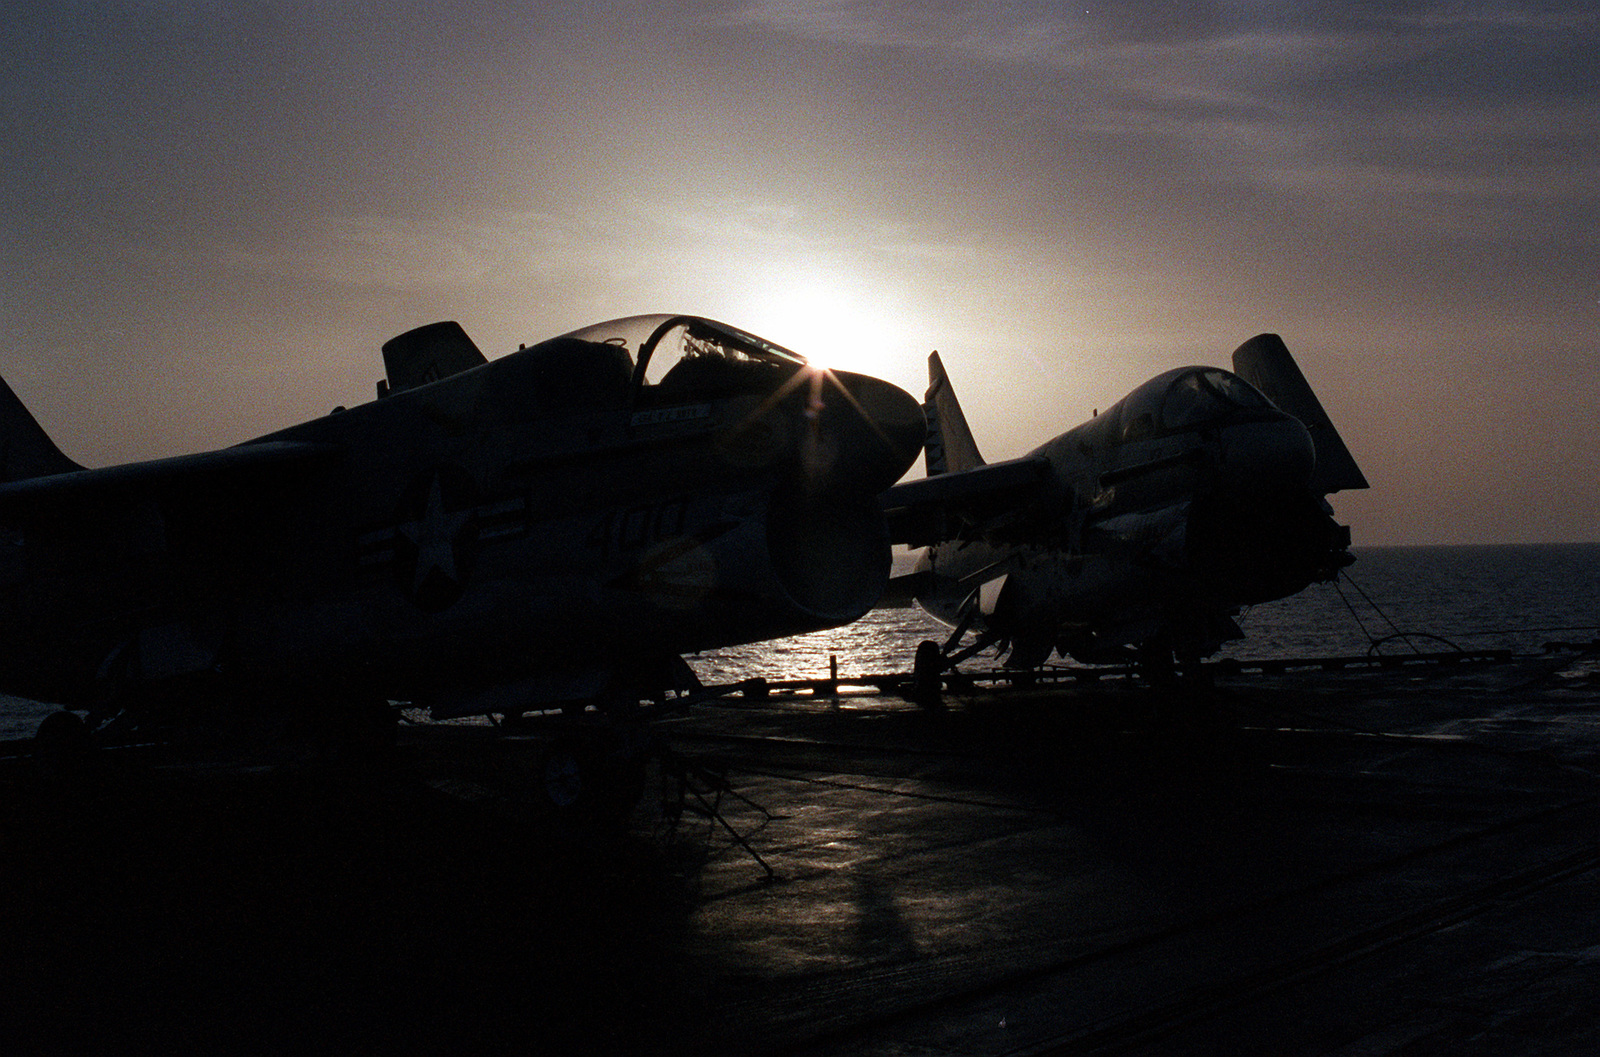 Right front view of two A-7 Corsair II attack aircraft parked aboard the aircraft carrier USS CORAL SEA (CV-43)